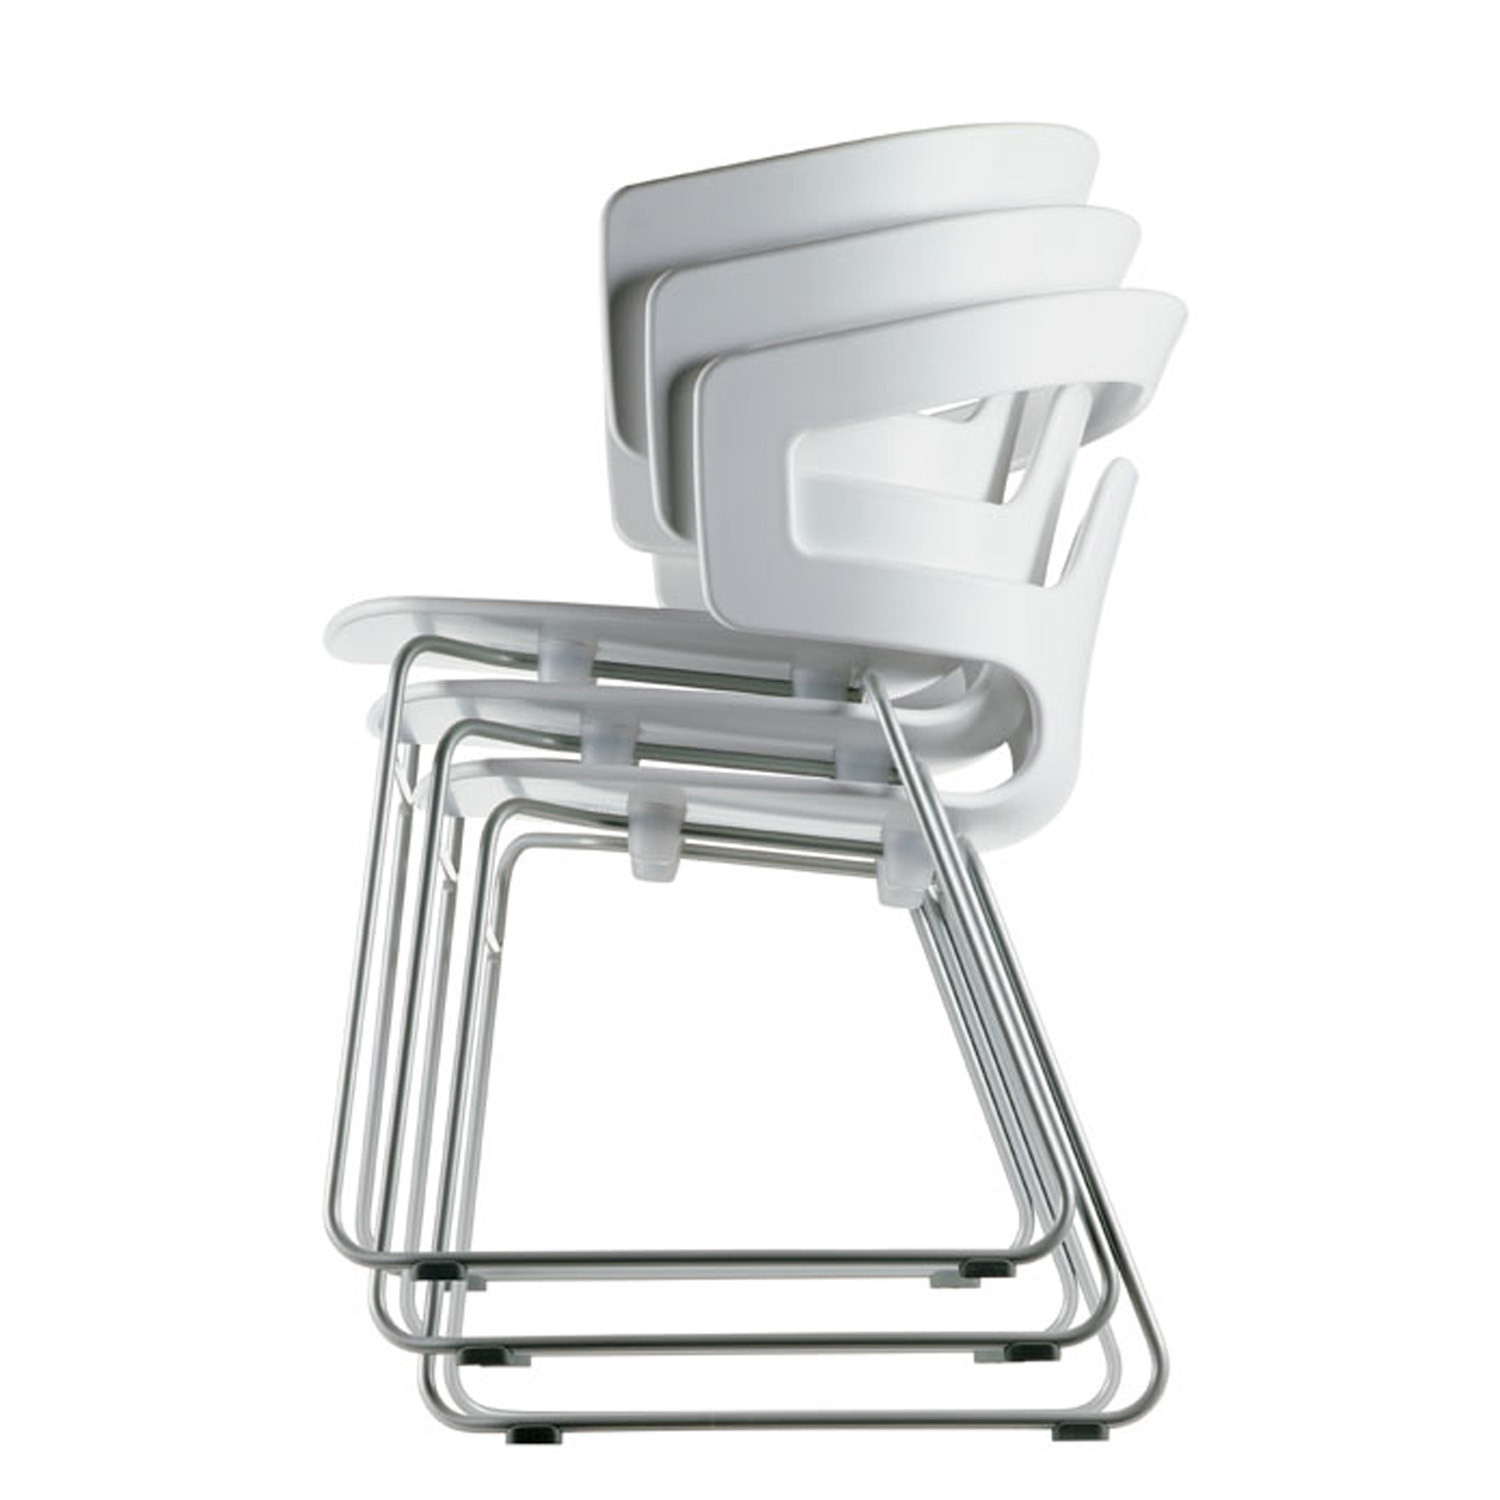 Segesta Armchair stacks up to 10 chairs